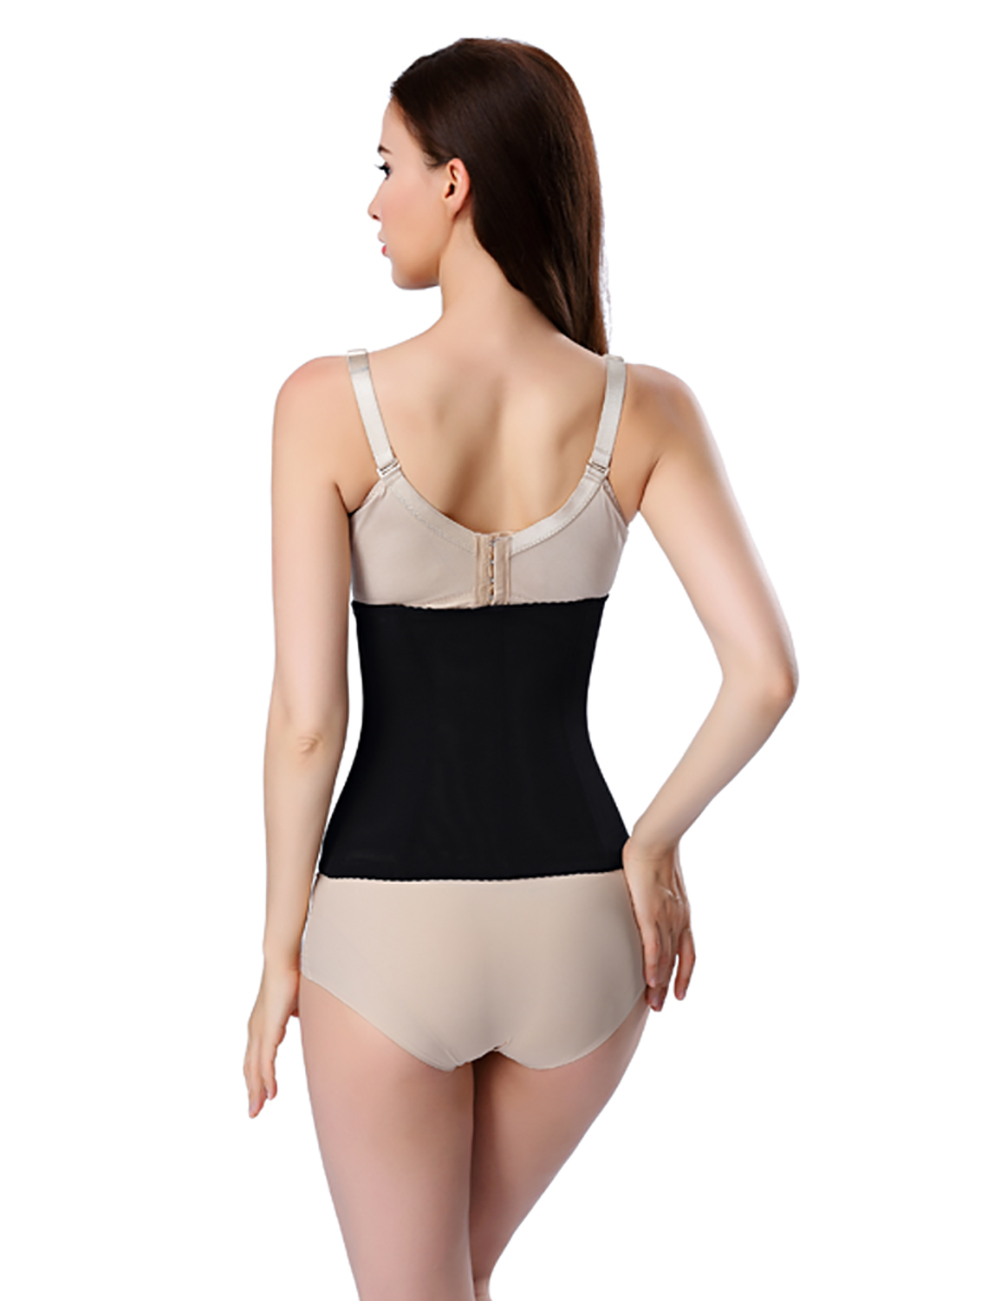 //cdn.affectcloud.com/hexinlingerie/upload/imgs/Shapewear/Waist_Belt/LB4971/LB4971-201912165df6f1e5e9043.jpg